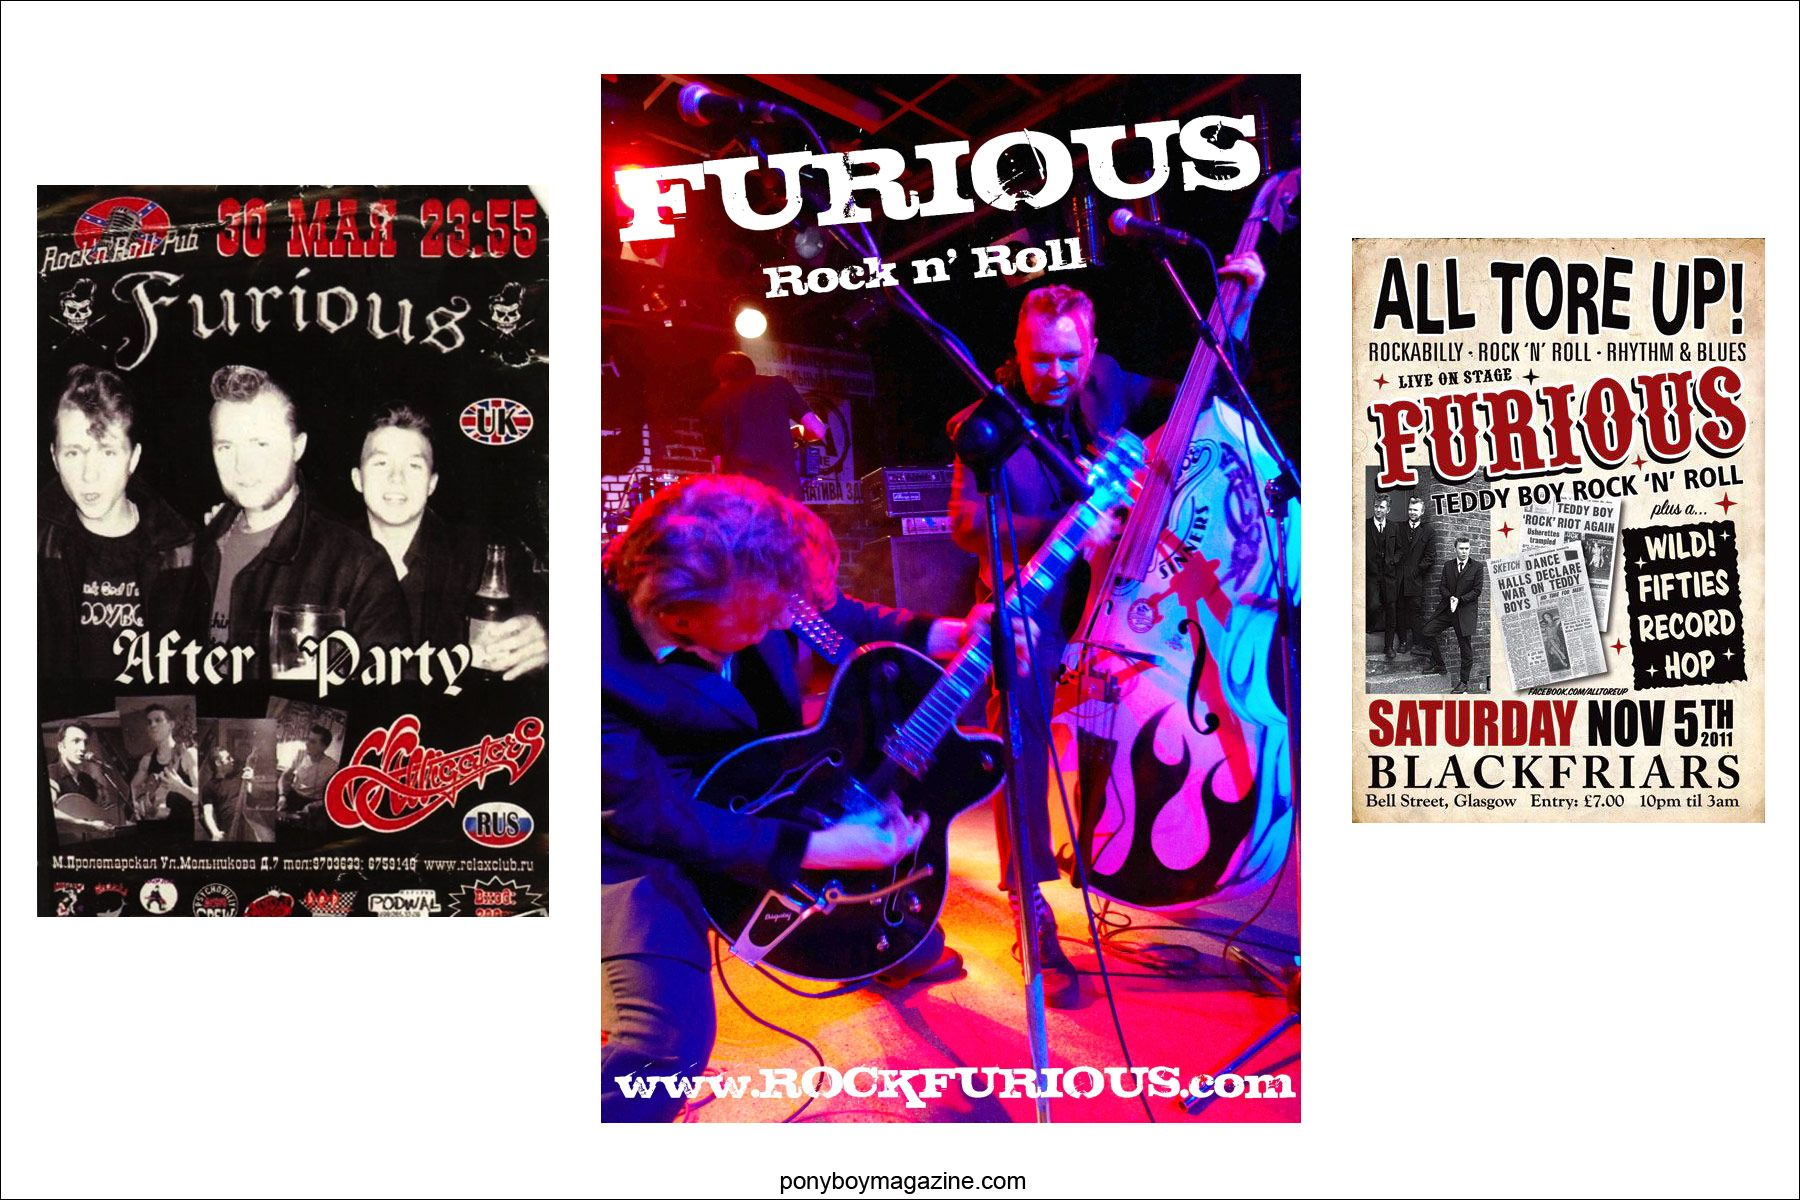 Various flyers for Teddy boy band Furious. Ponyboy Magazine.